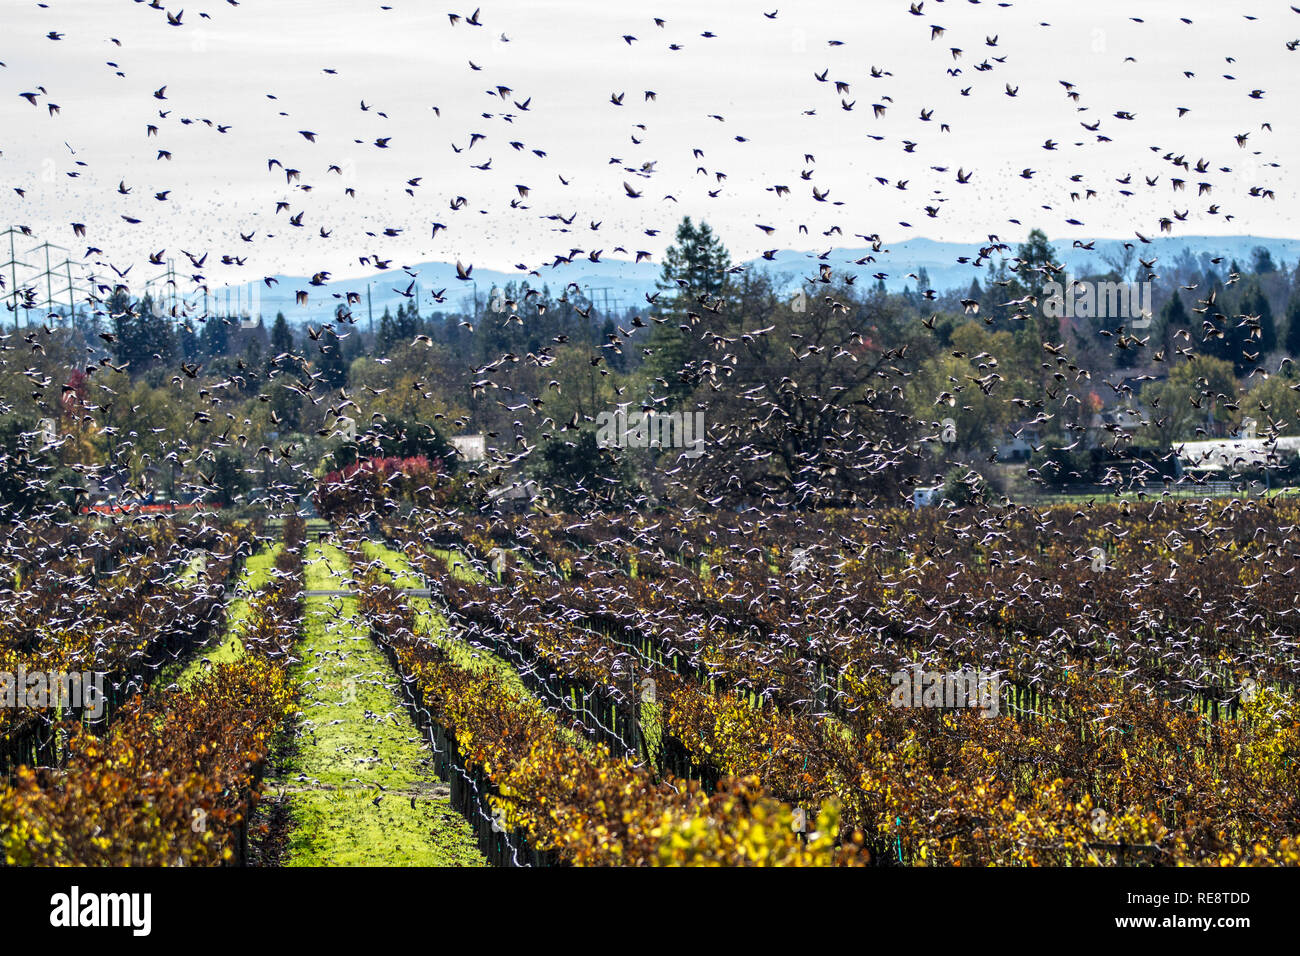 Swarm II - Vaux's swifts fly in a frenzy over a vineyard. Sonoma County, California, USA - Stock Image